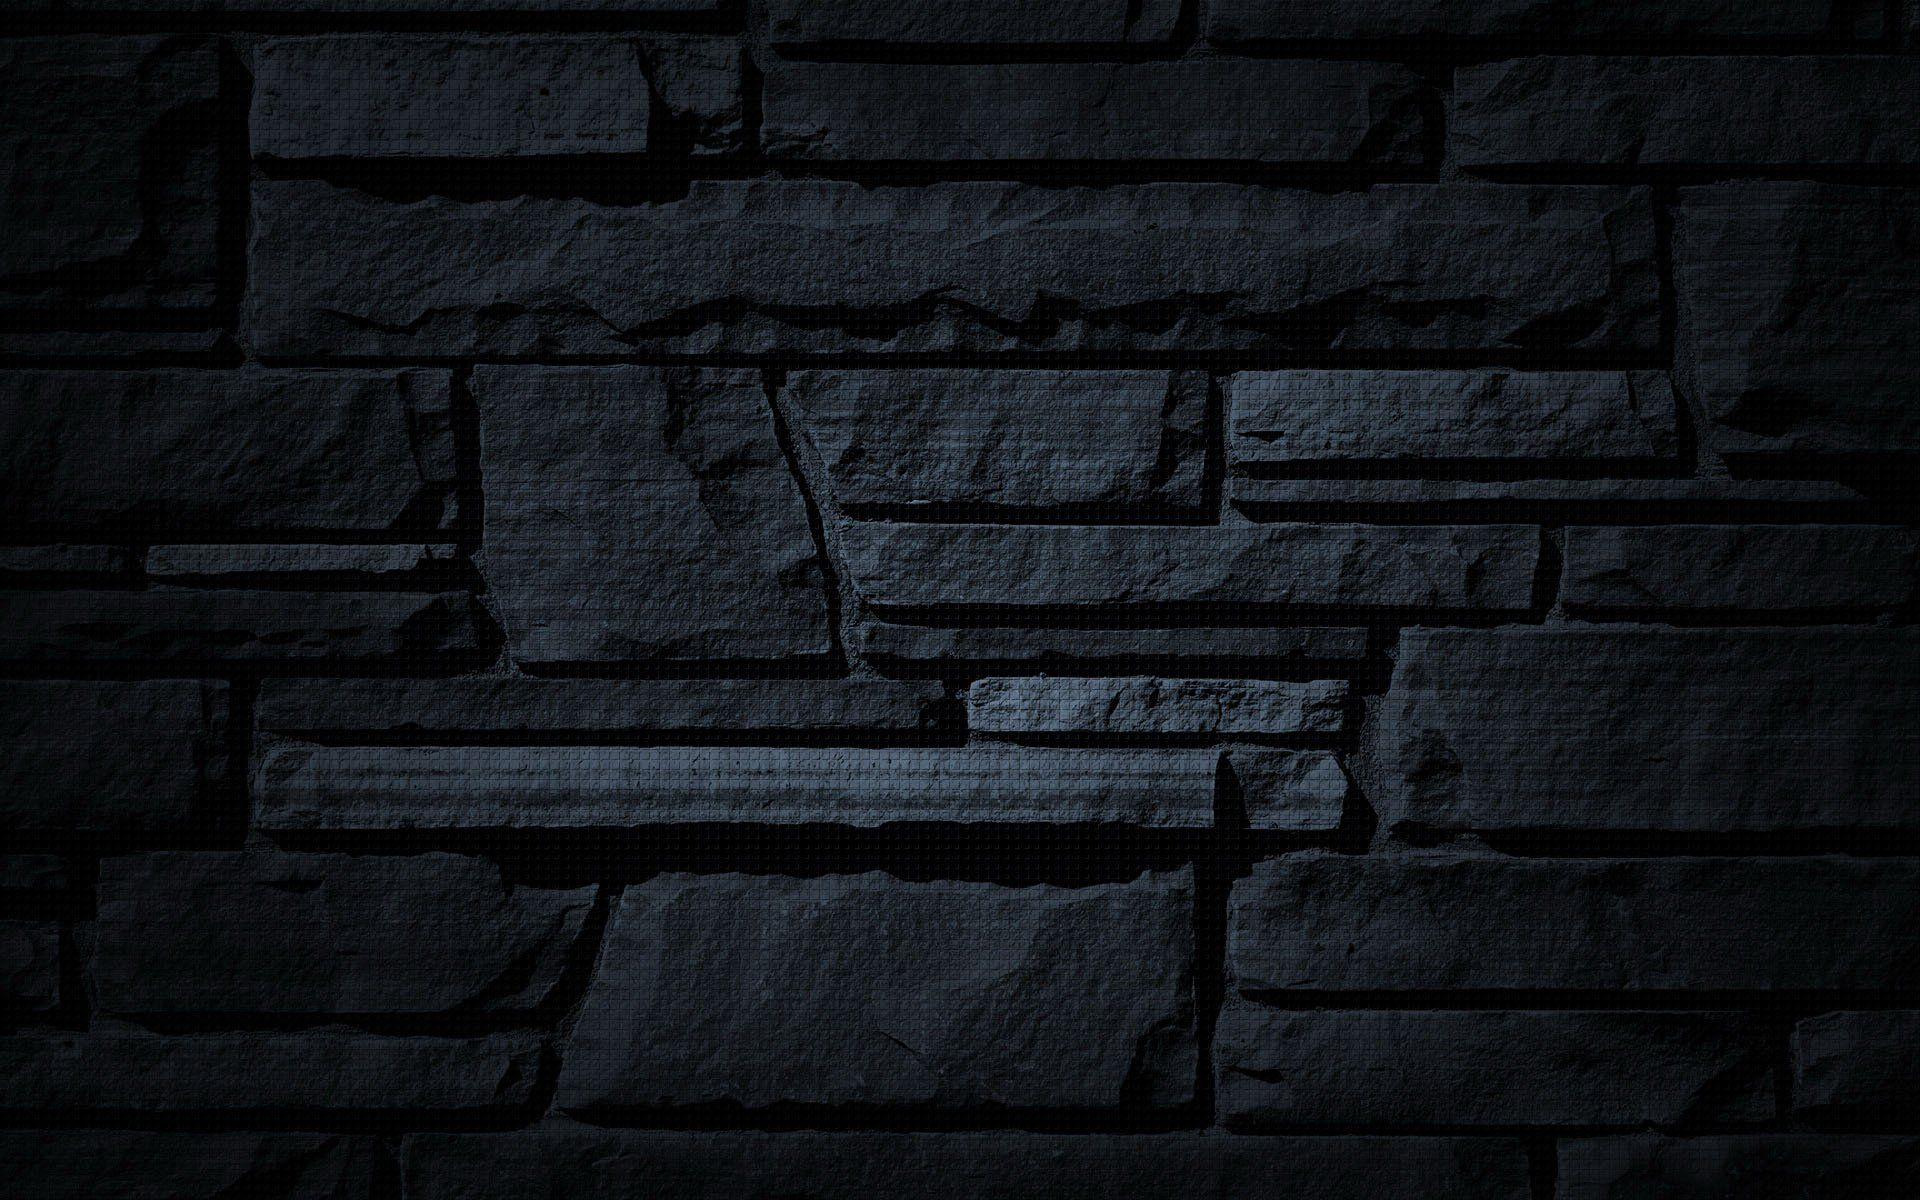 black wallpaper in fhd for free download for android desktop a· live wallpapersblack wallpaperhd